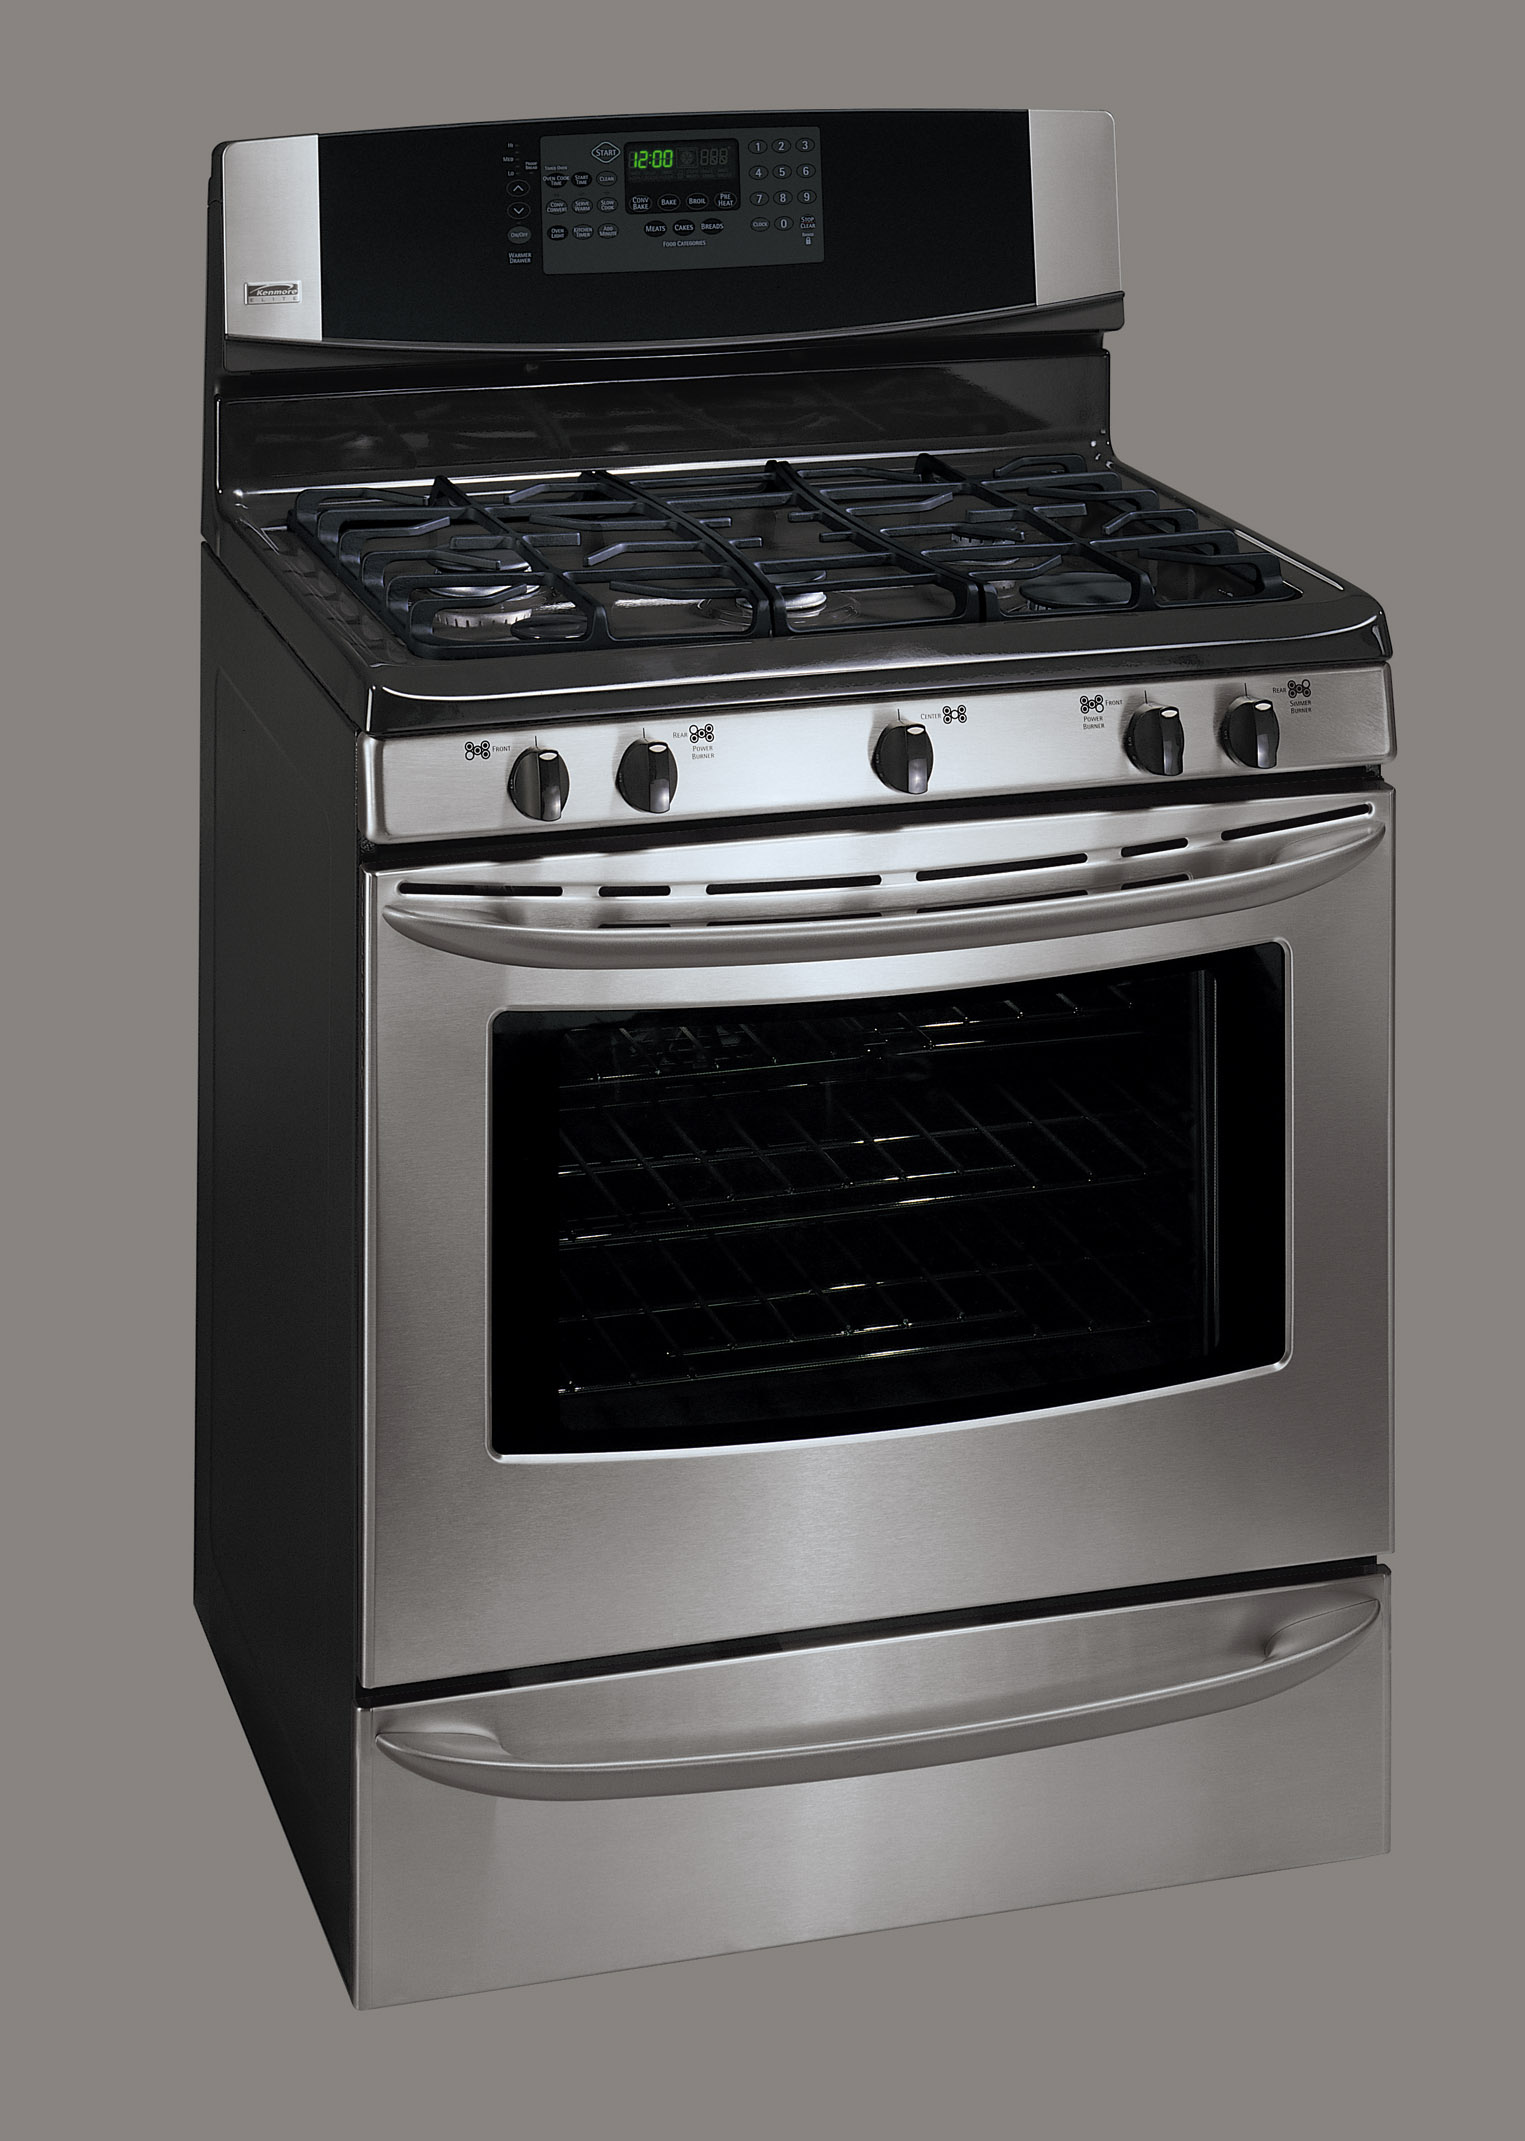 Kenmore Range Stove Oven Model 790 79363405 Parts